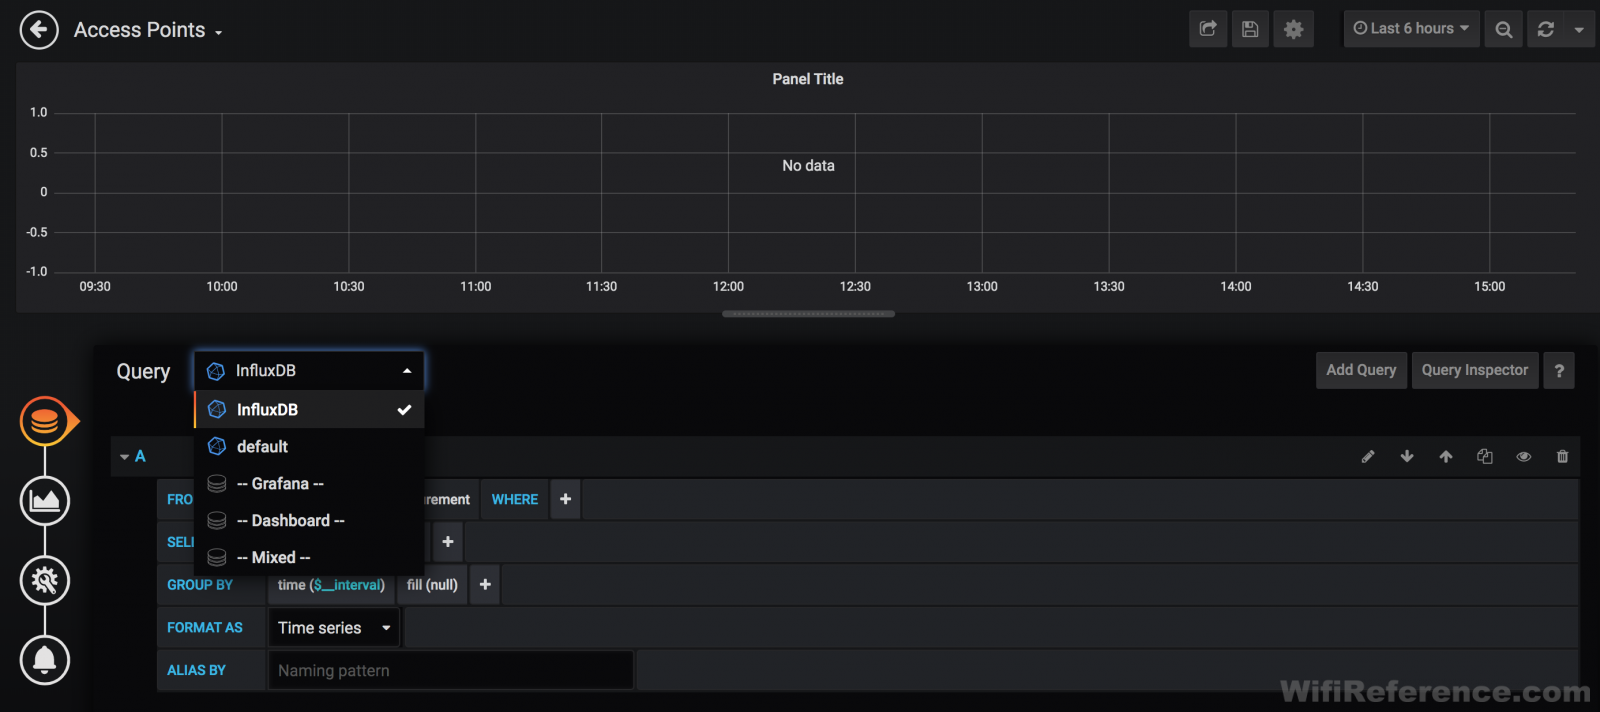 Grafana channel utilization 1